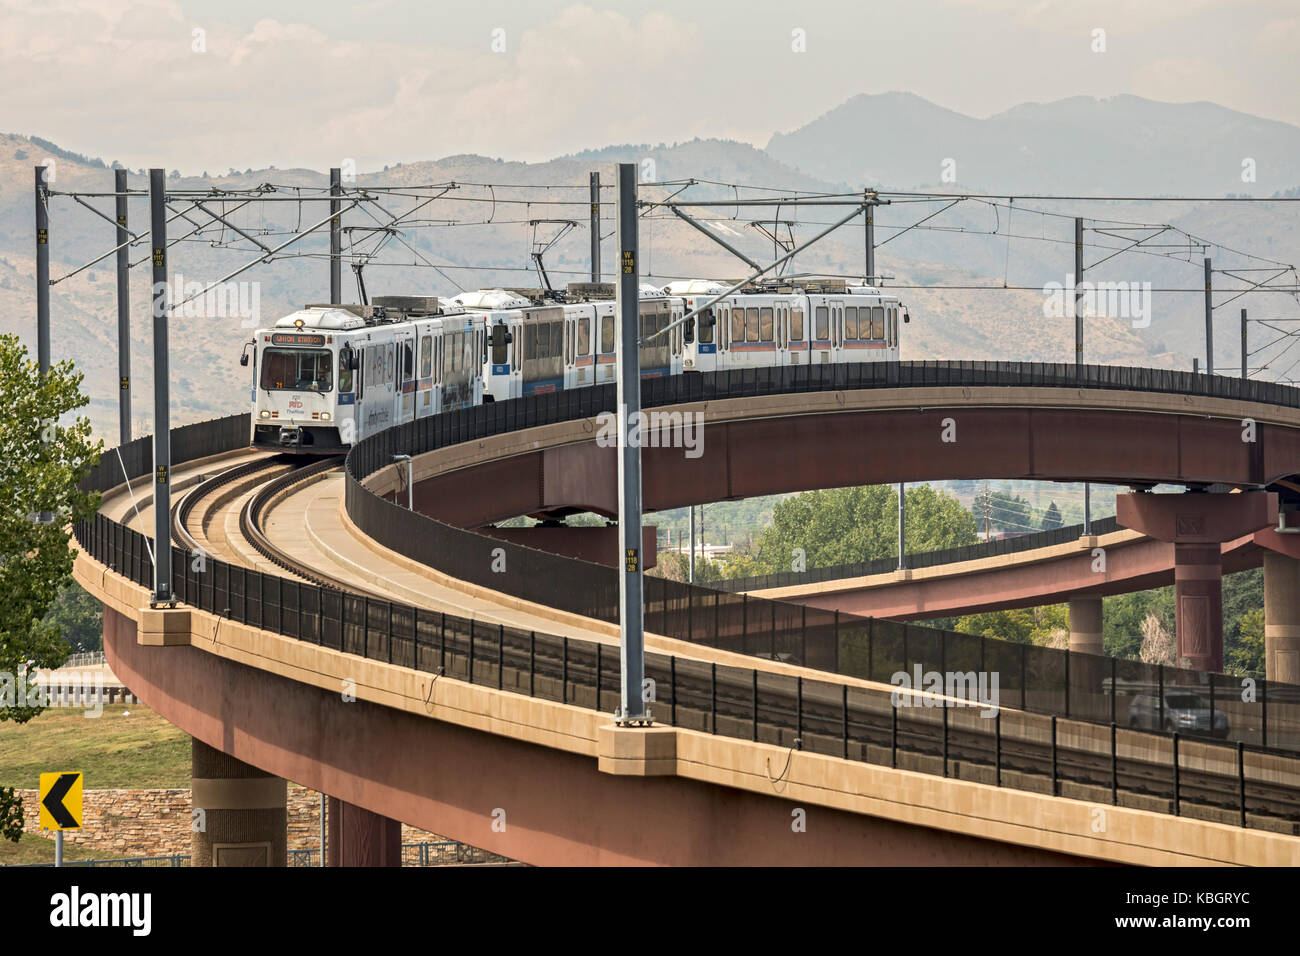 Lakewood, Colorado - A train on the 'W Line' of Denver's rapid transit system crosses a freeway. The - Stock Image